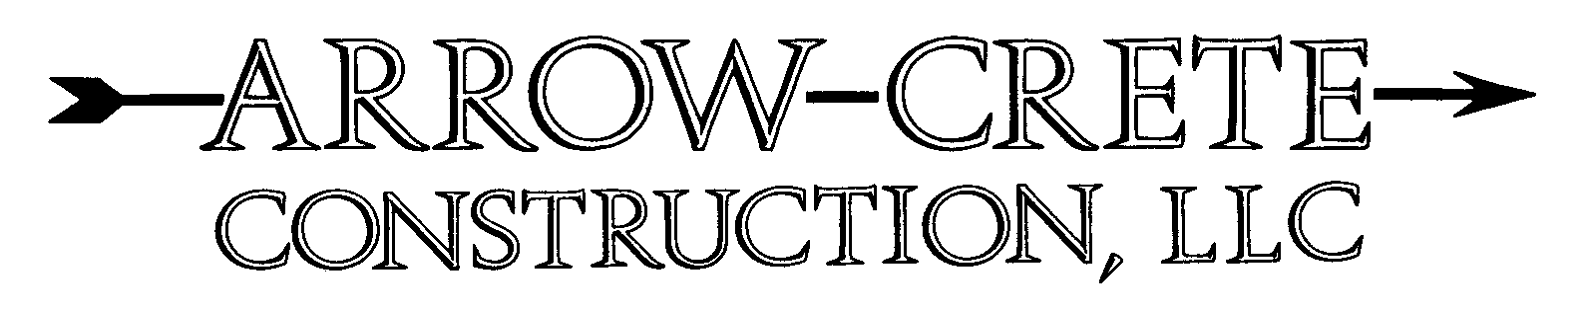 ARROW-CRETE CONSTRUCTION LLC